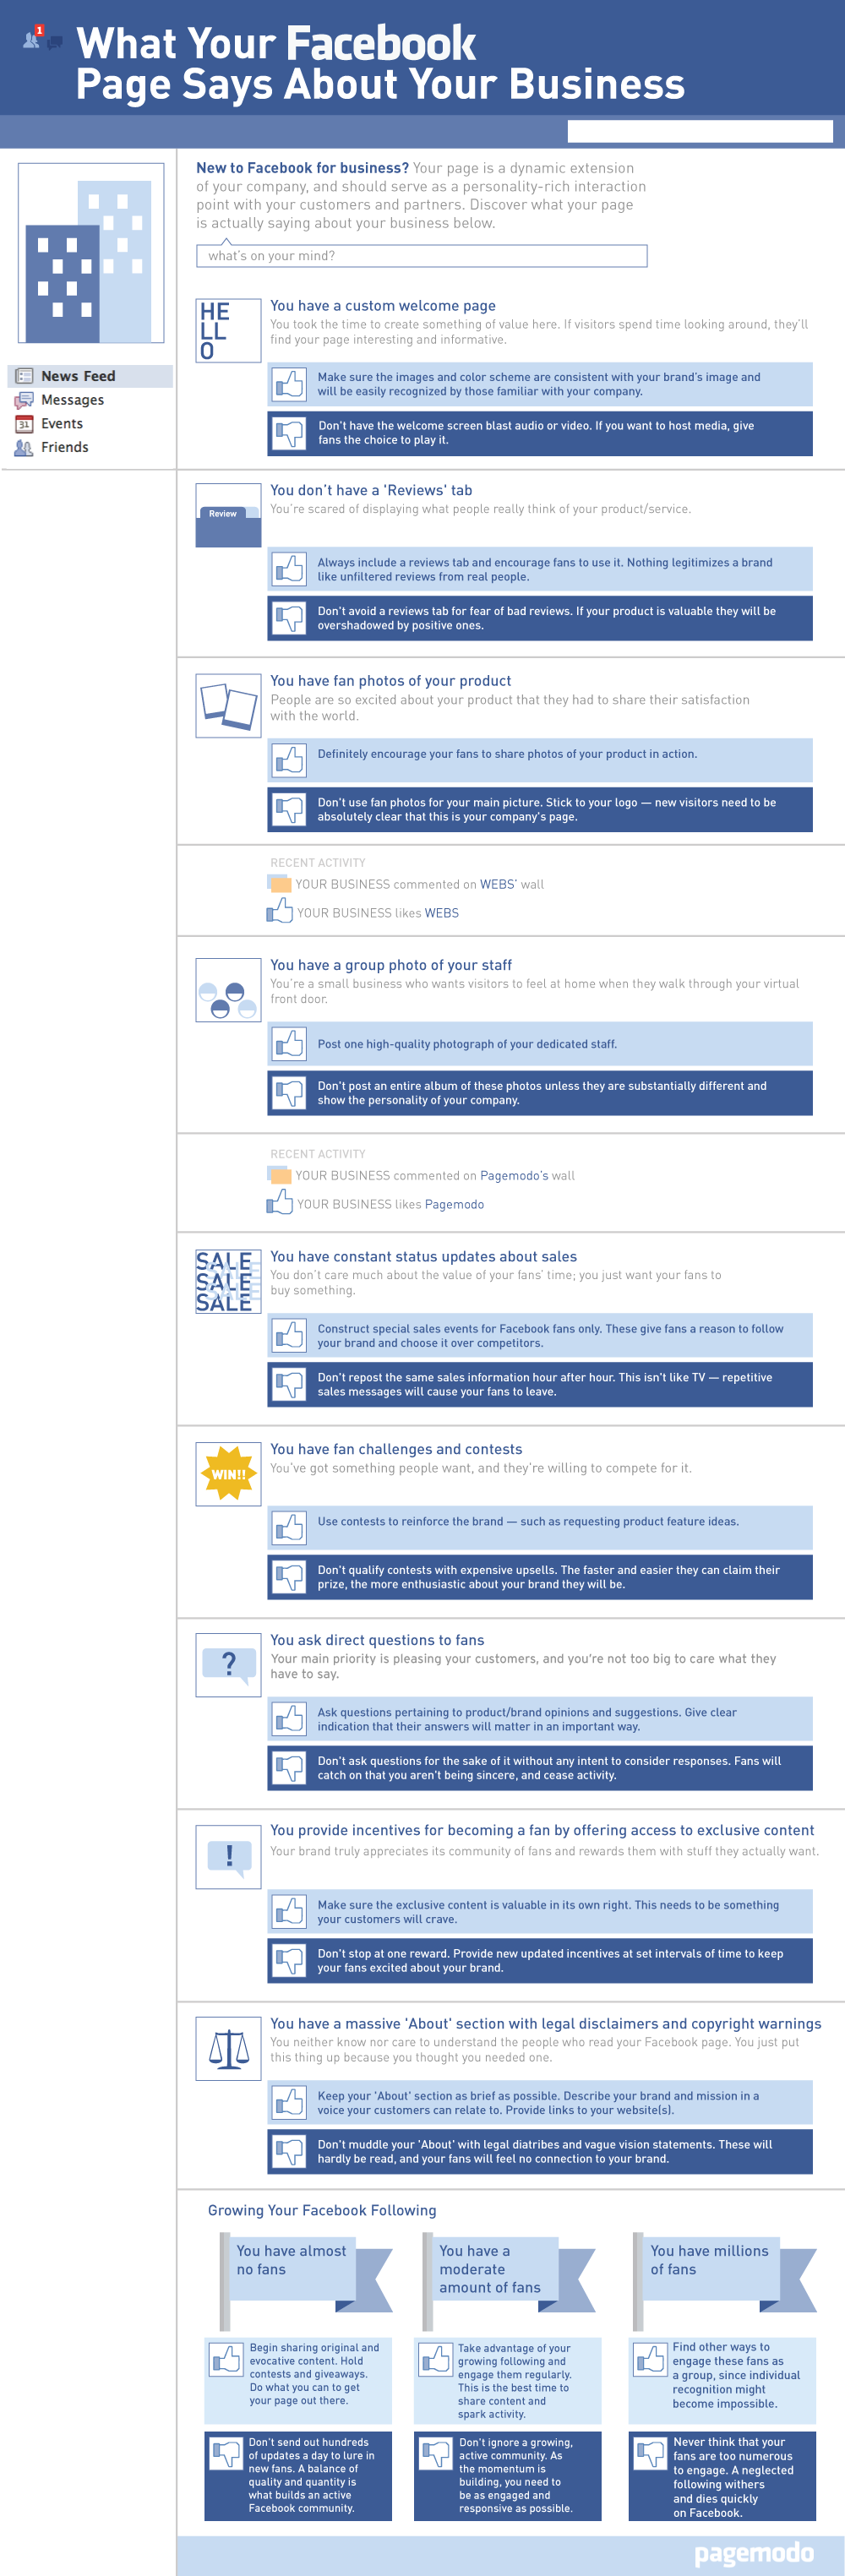 What-Your-Facebook-Page-Says-About-Your-Business-infographic